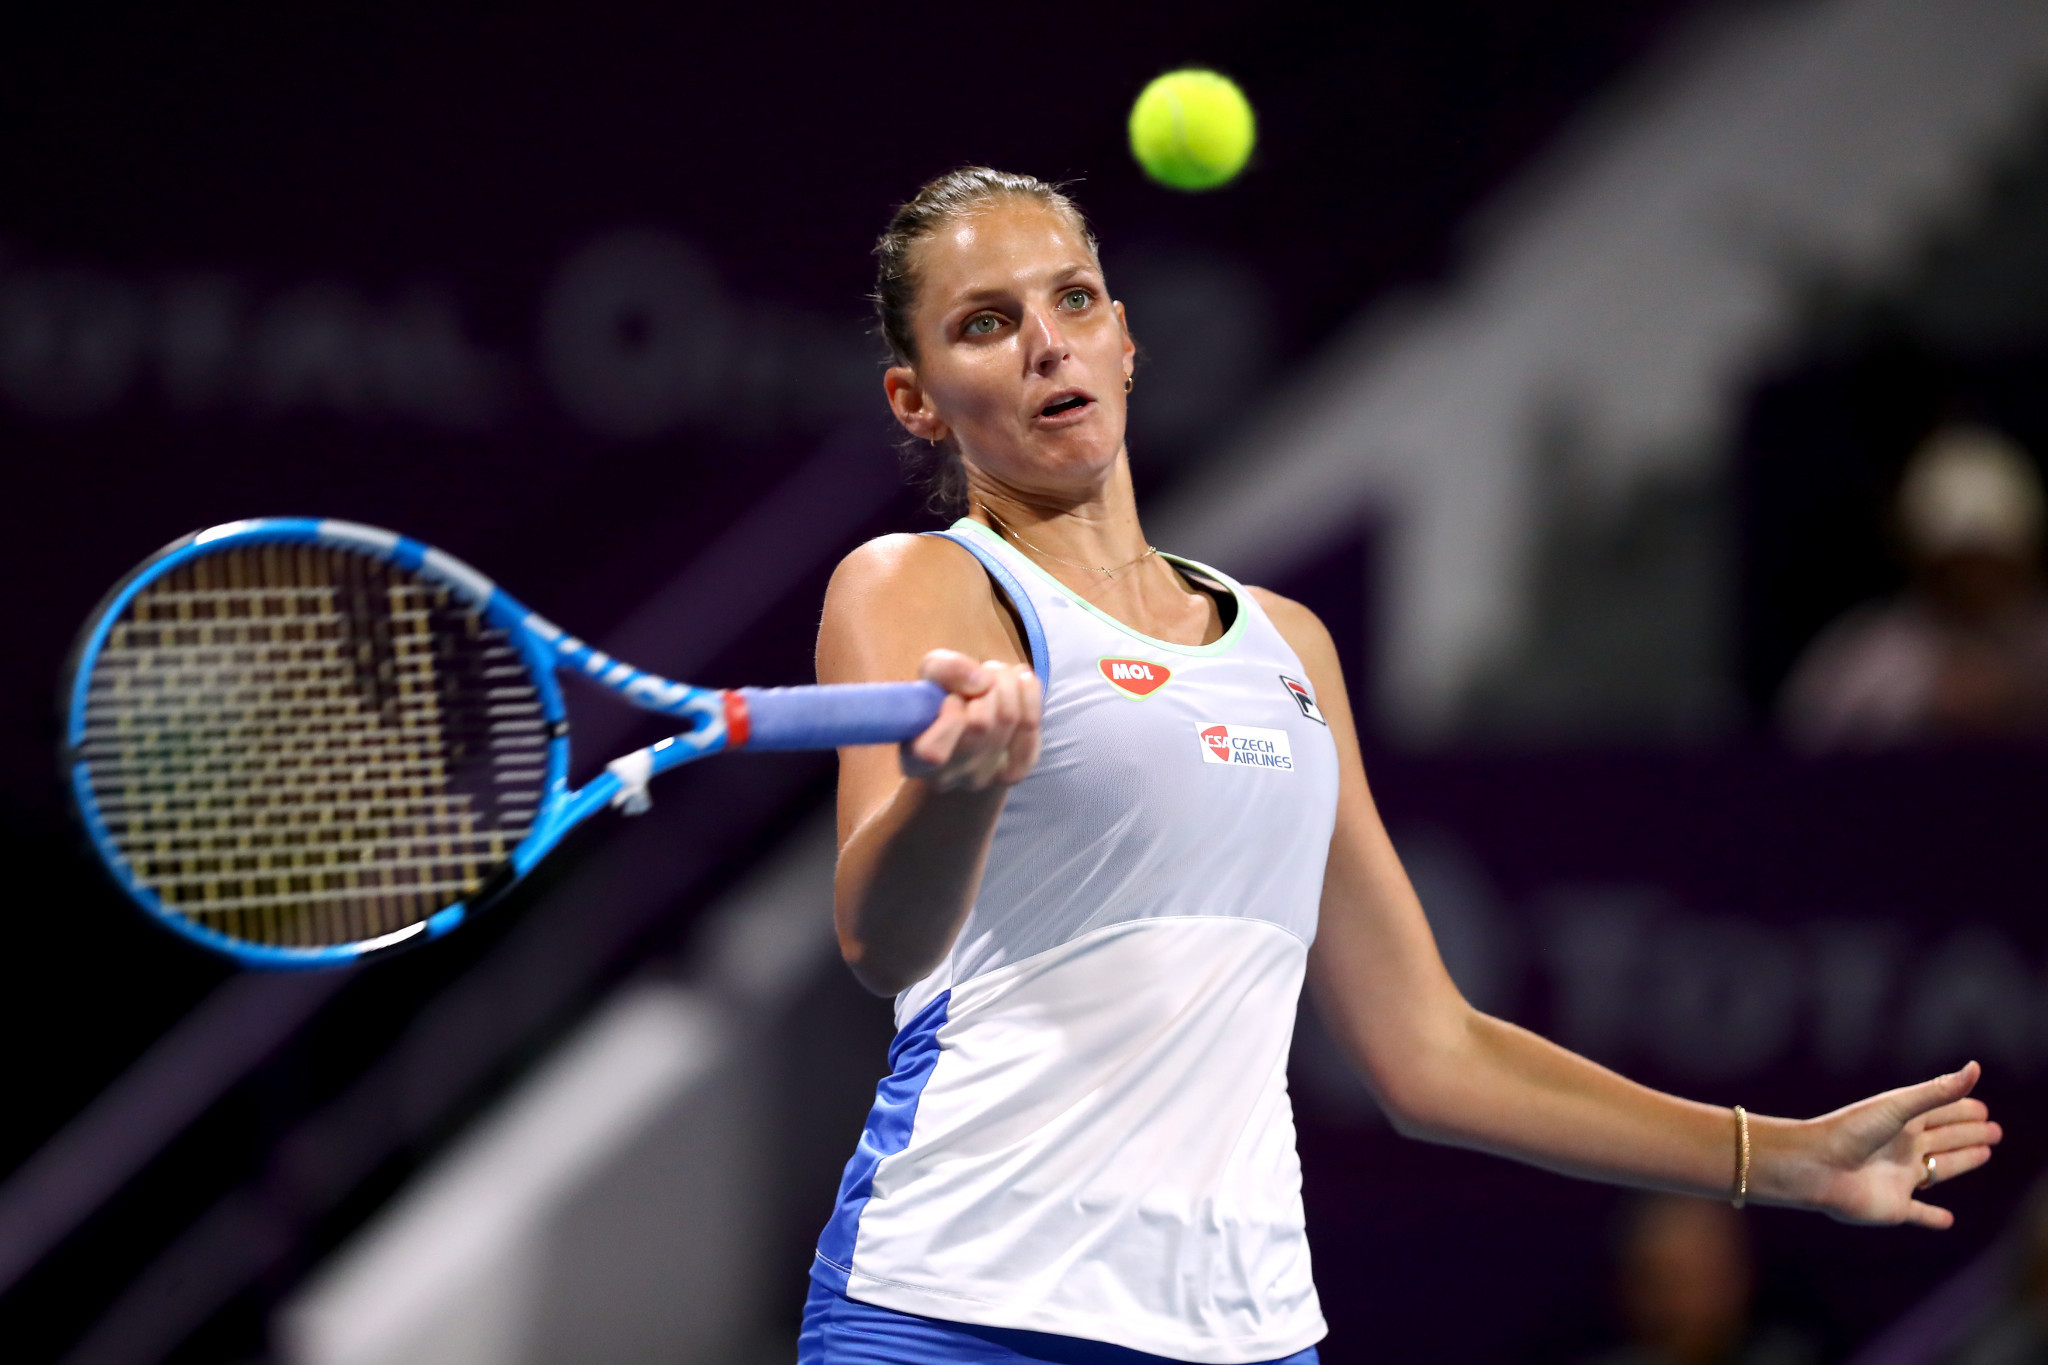 Karolína Plíšková of the Czech Republic will aim to take advantage of a number of high-profile withdrawals from the US Open ©Getty Images